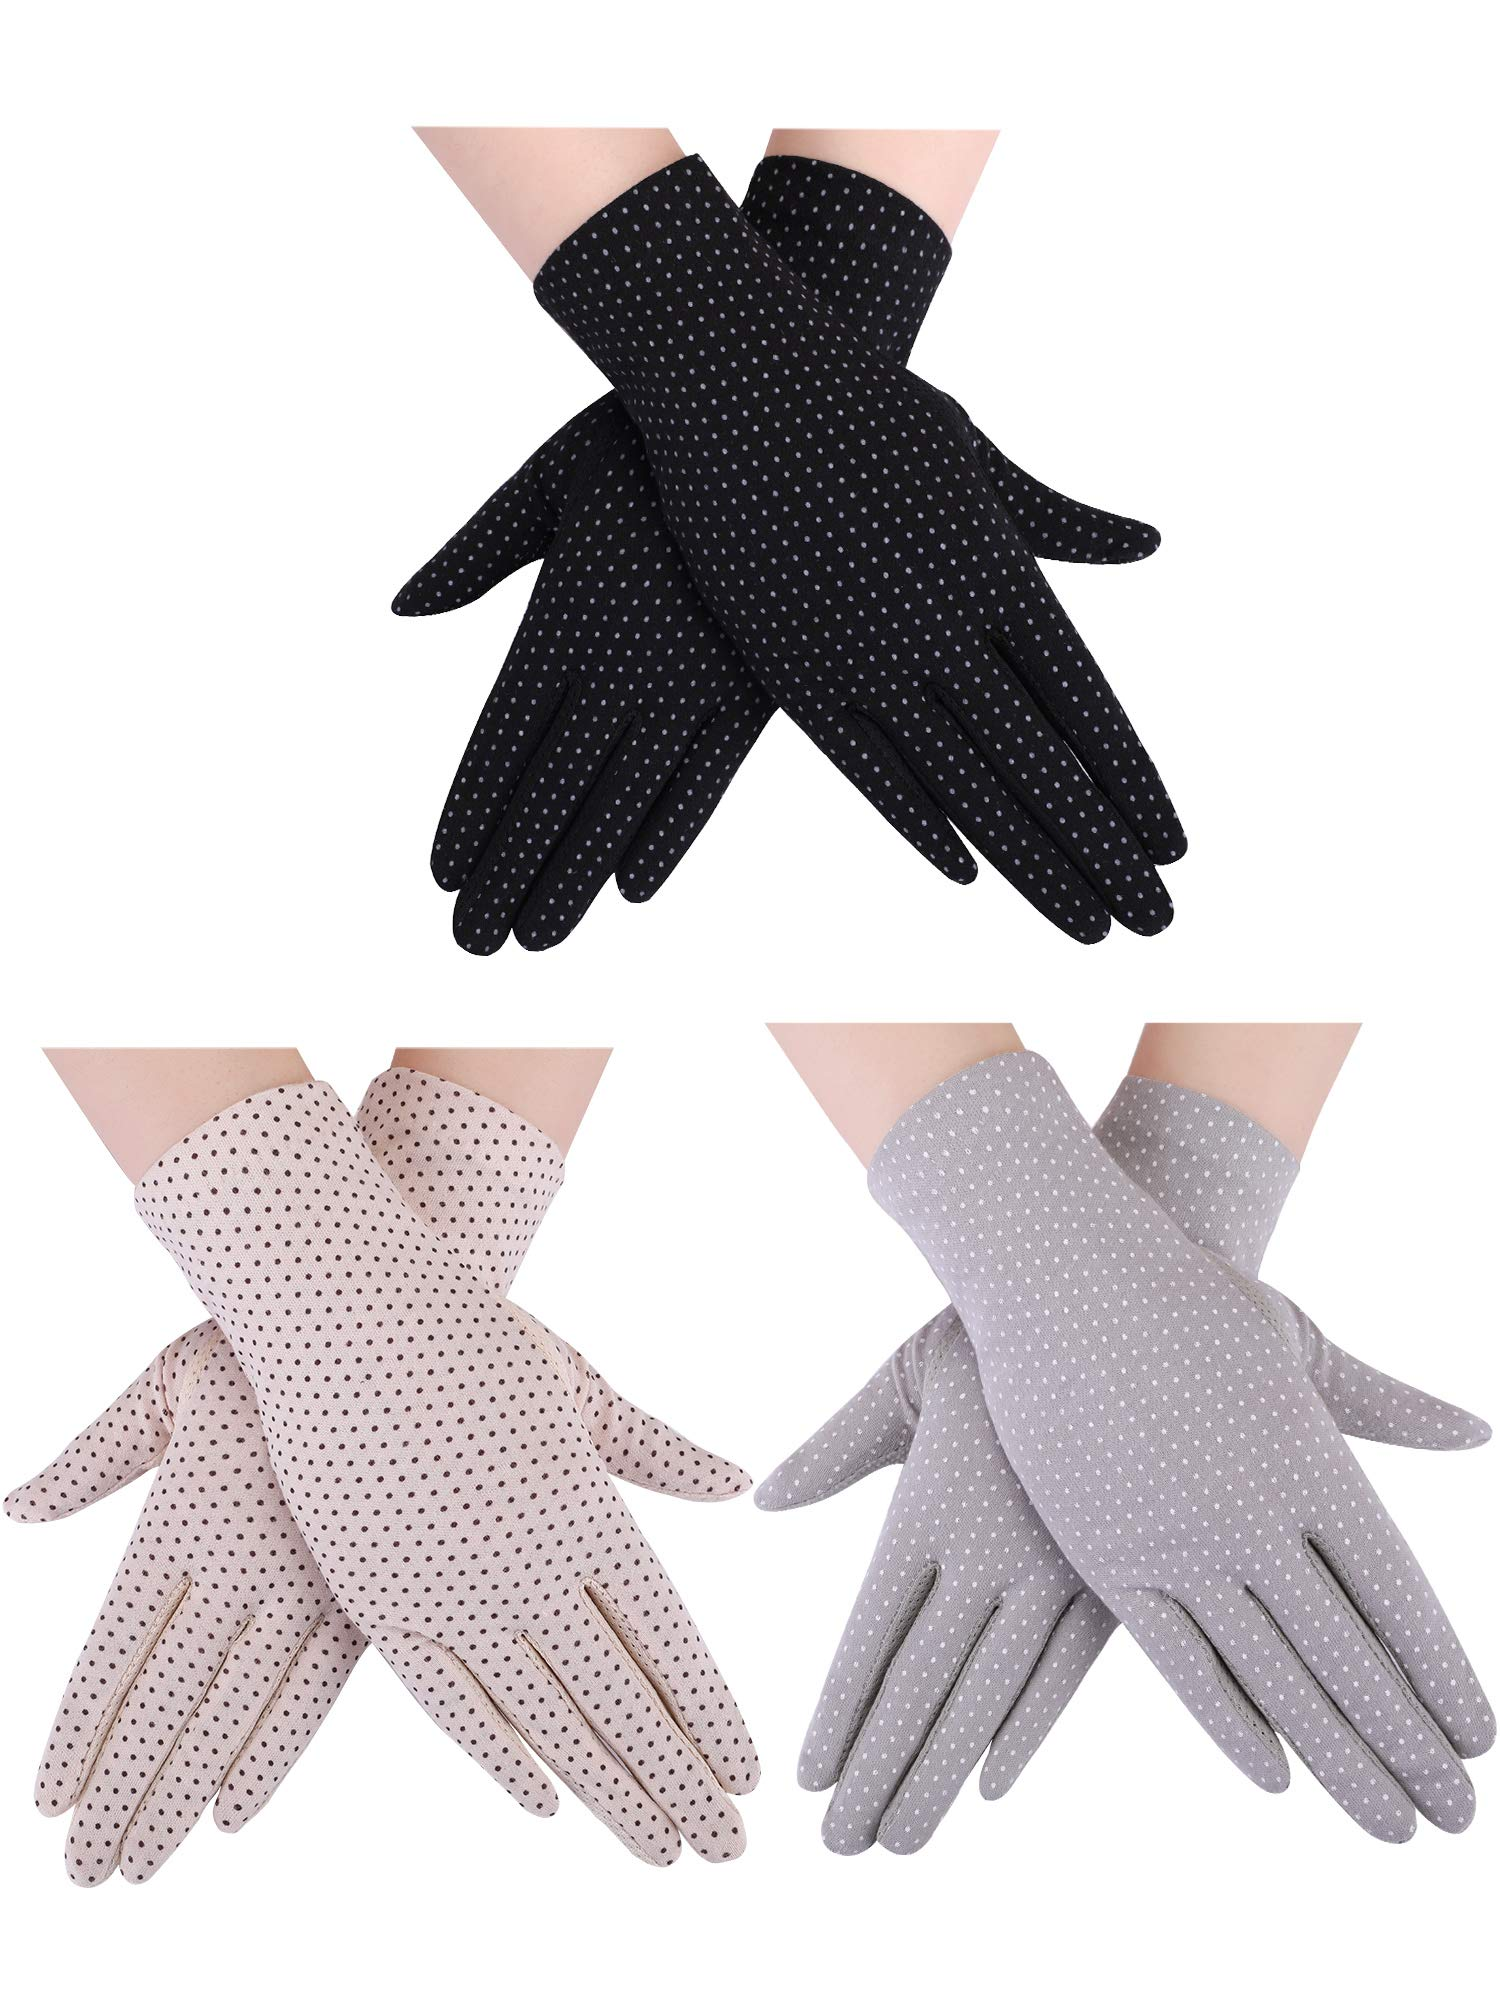 3 Pairs Women Sun Protective Gloves UV Protection Sunblock Gloves Touchscreen Gloves for Summer Driving Riding (Color Set 2)